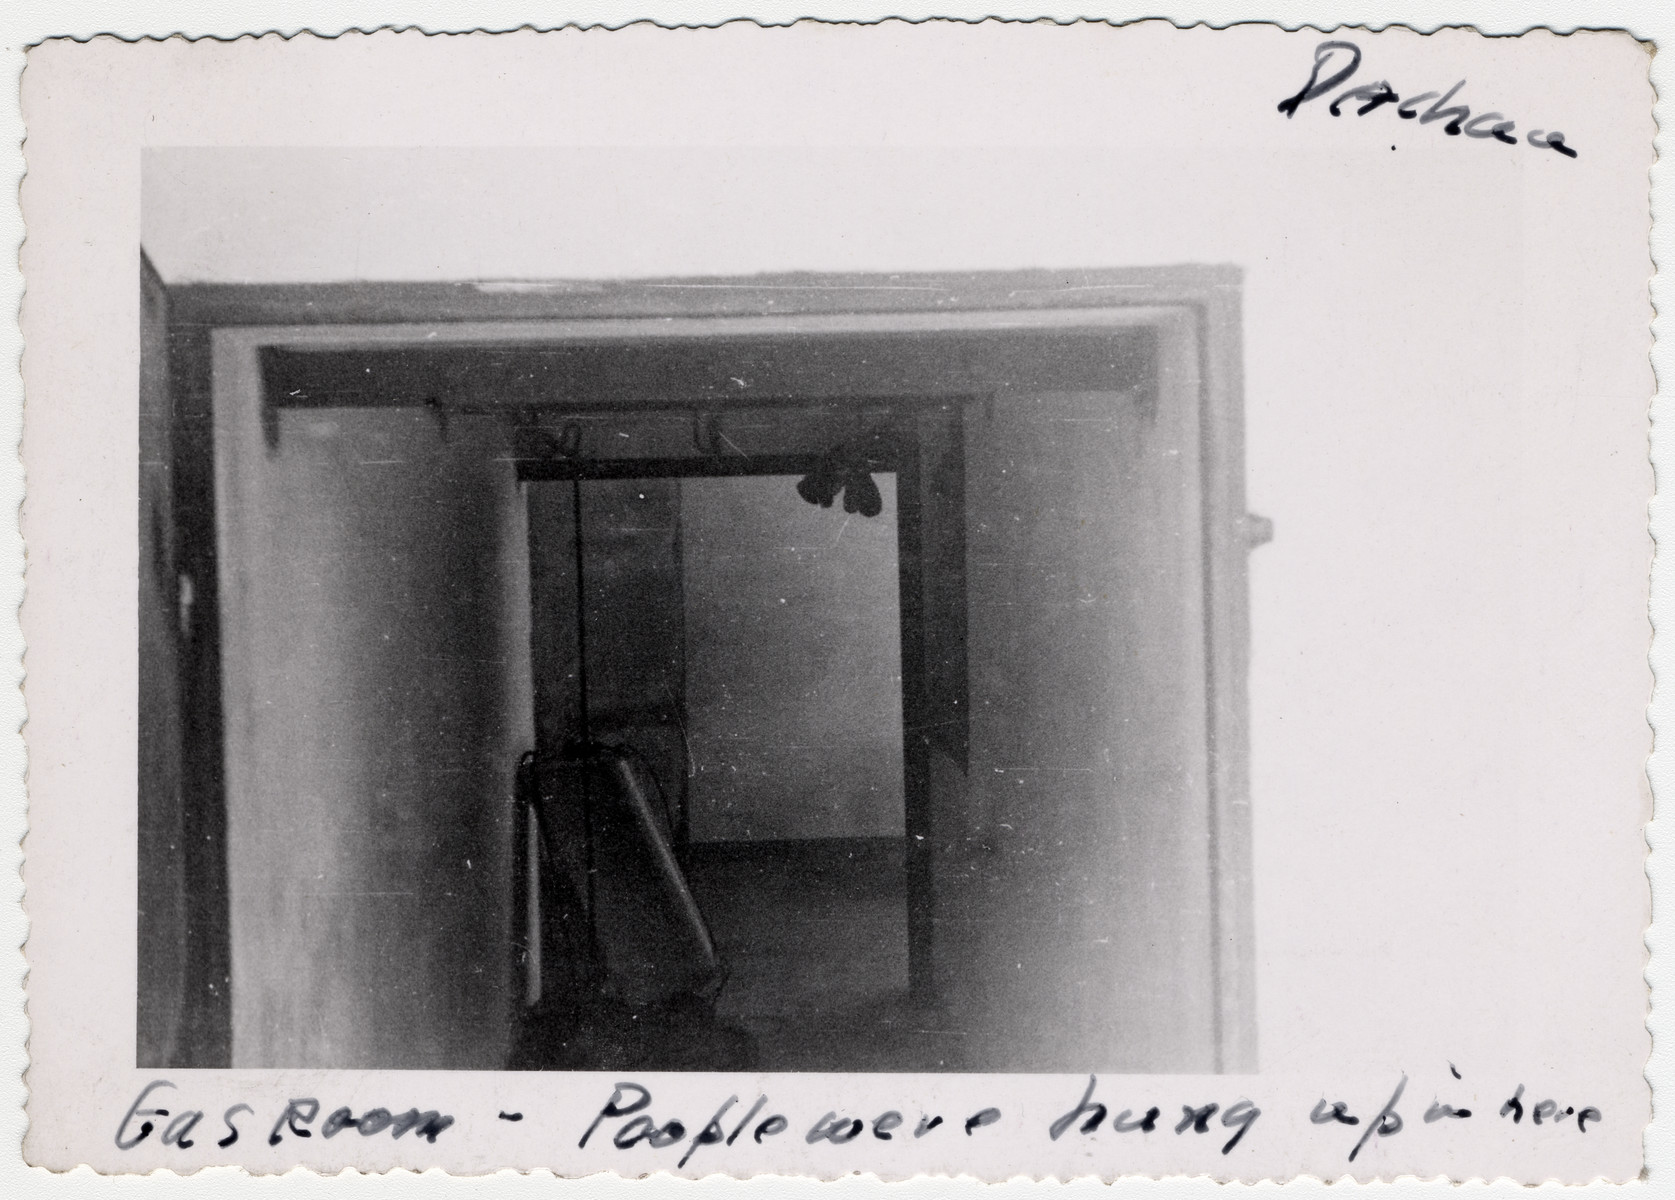 """Interior view of a gas chamber in the Dachau concentration camp after liberation.  The original caption reads: """"Gas room -- People were hung up in here."""""""